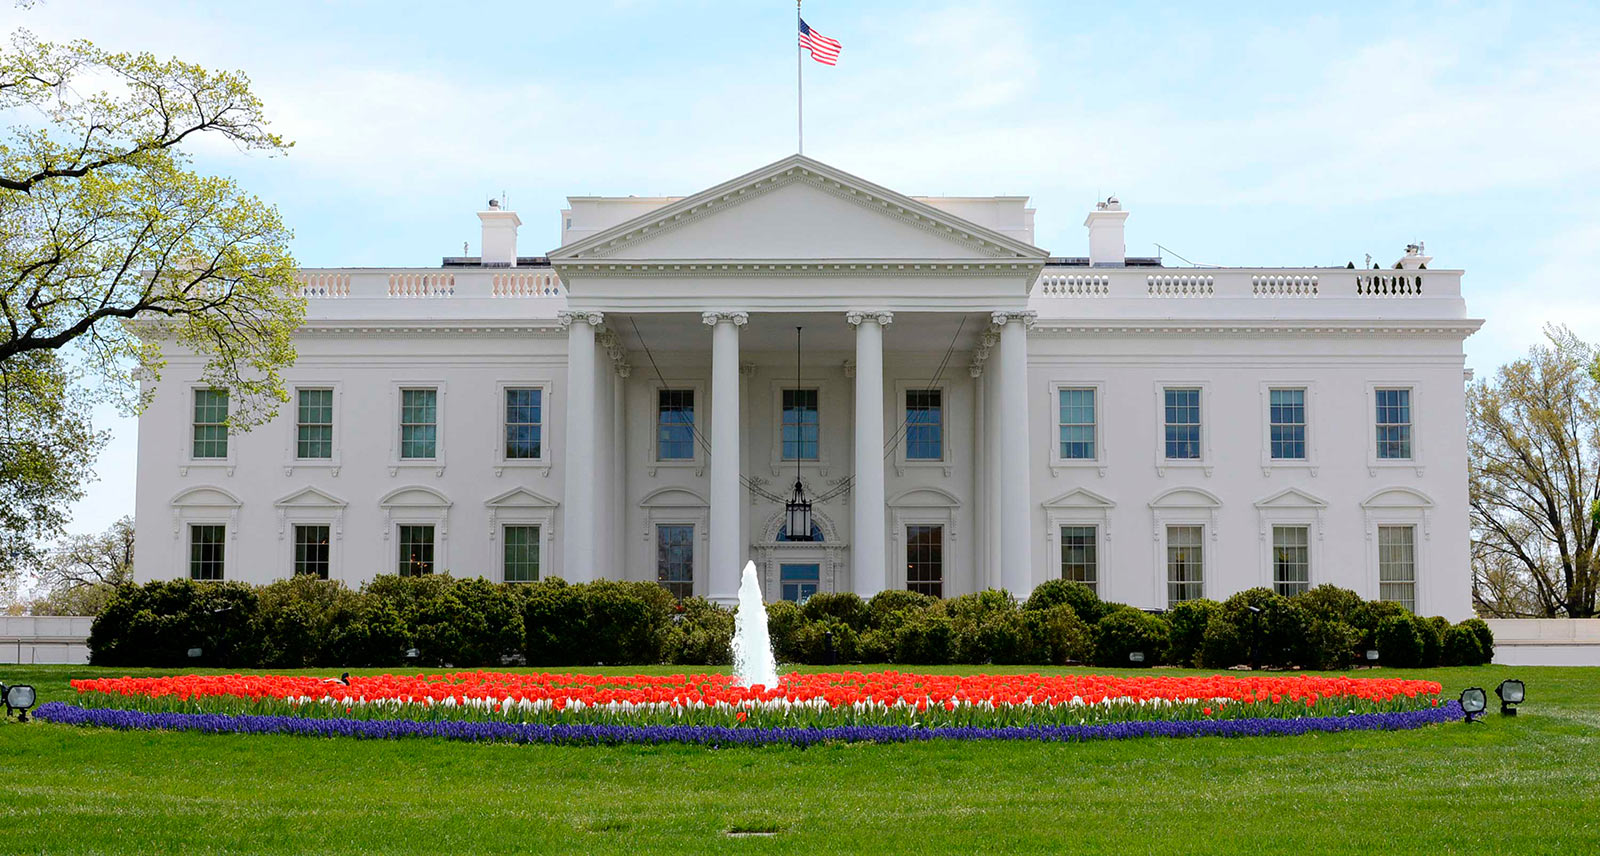 The White House - North Lawn and Entrance - Washington, DC